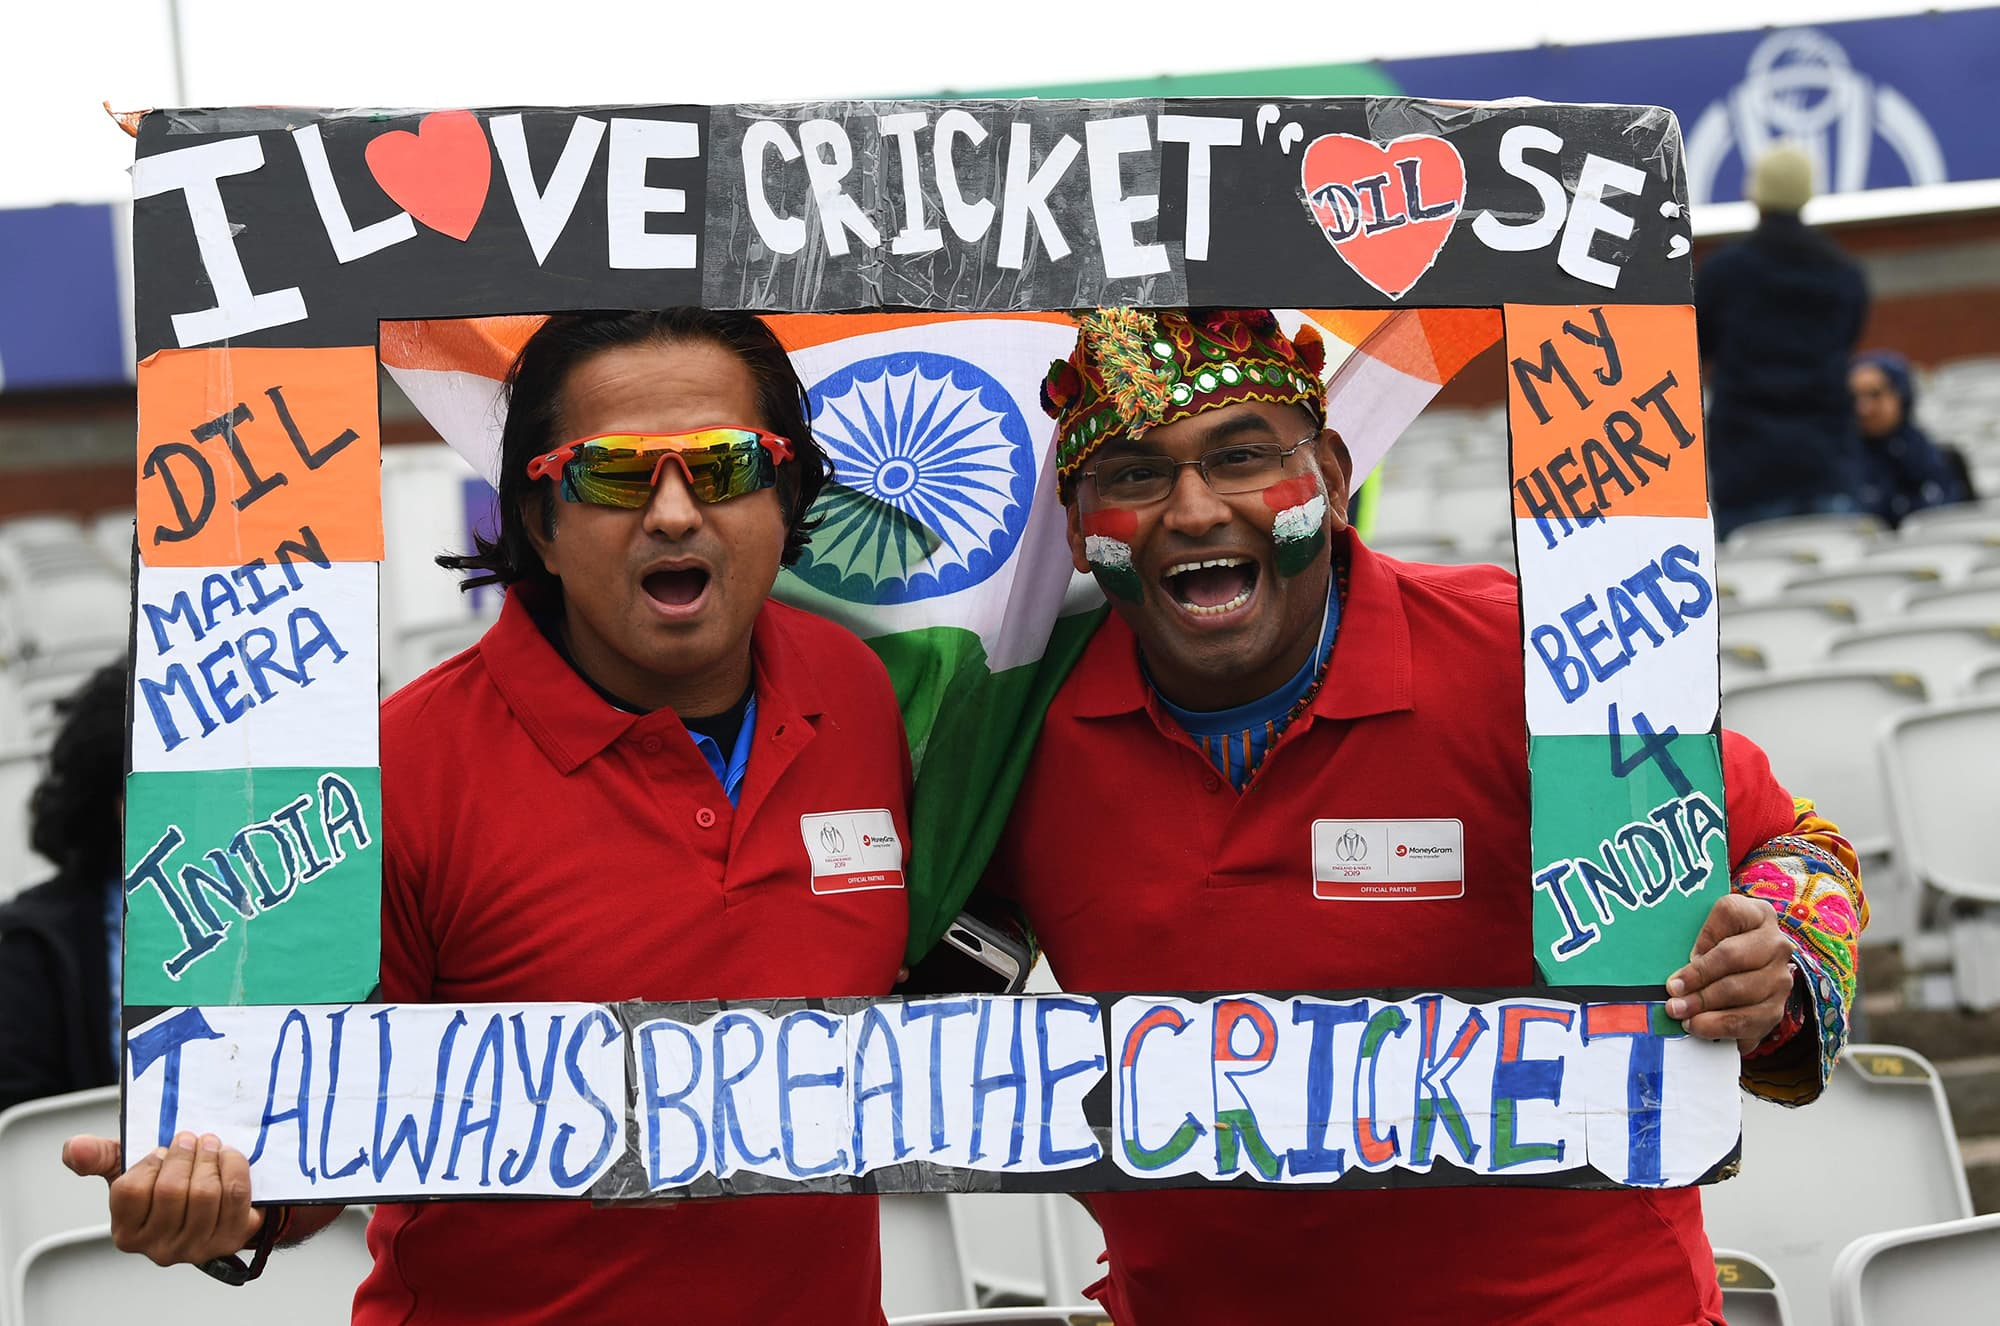 Indian supporters pose ahead of the match. ─ AFP